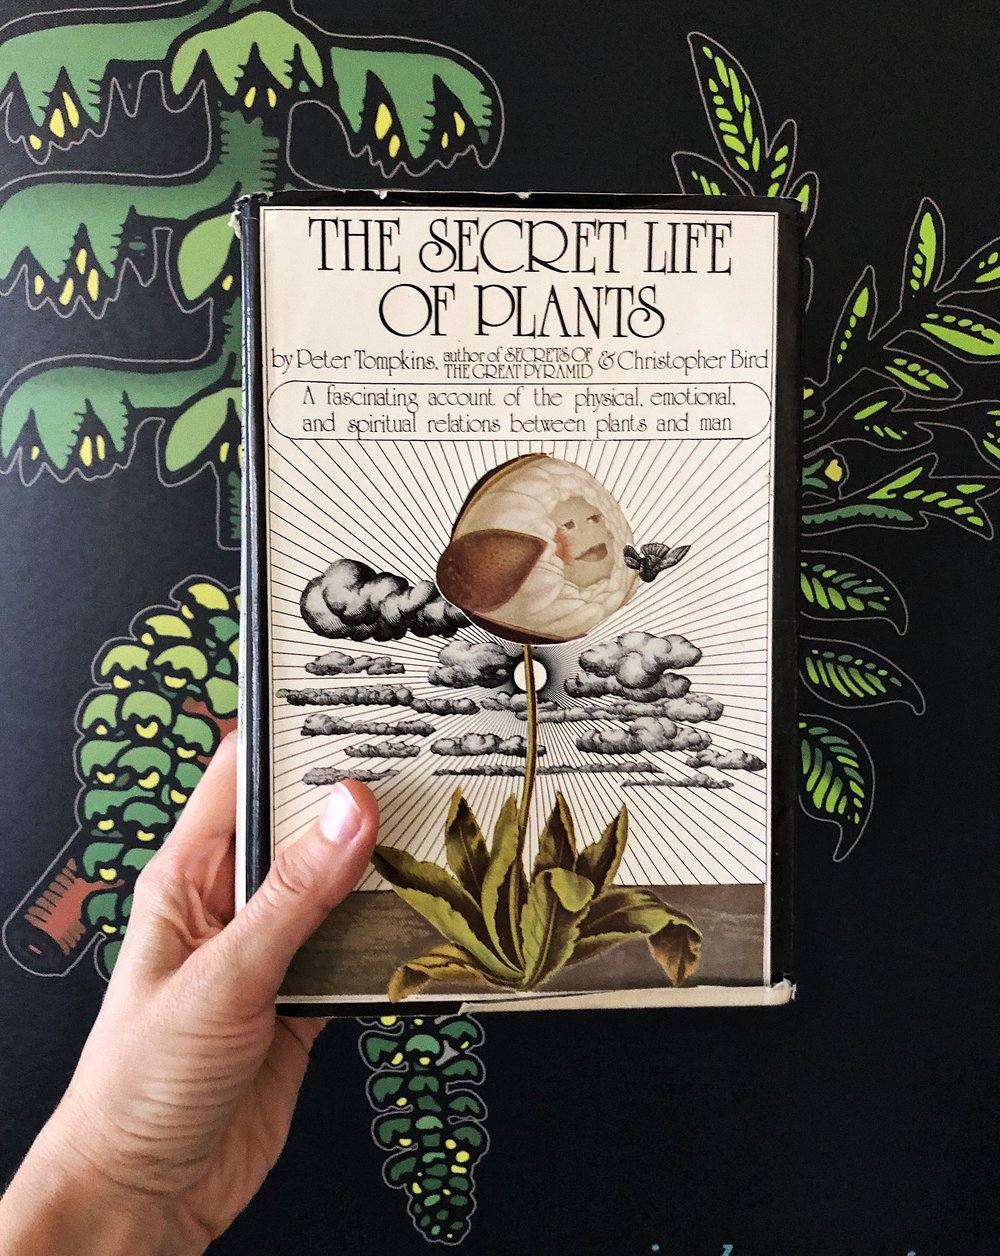 the-secret-life-of-plants-1973